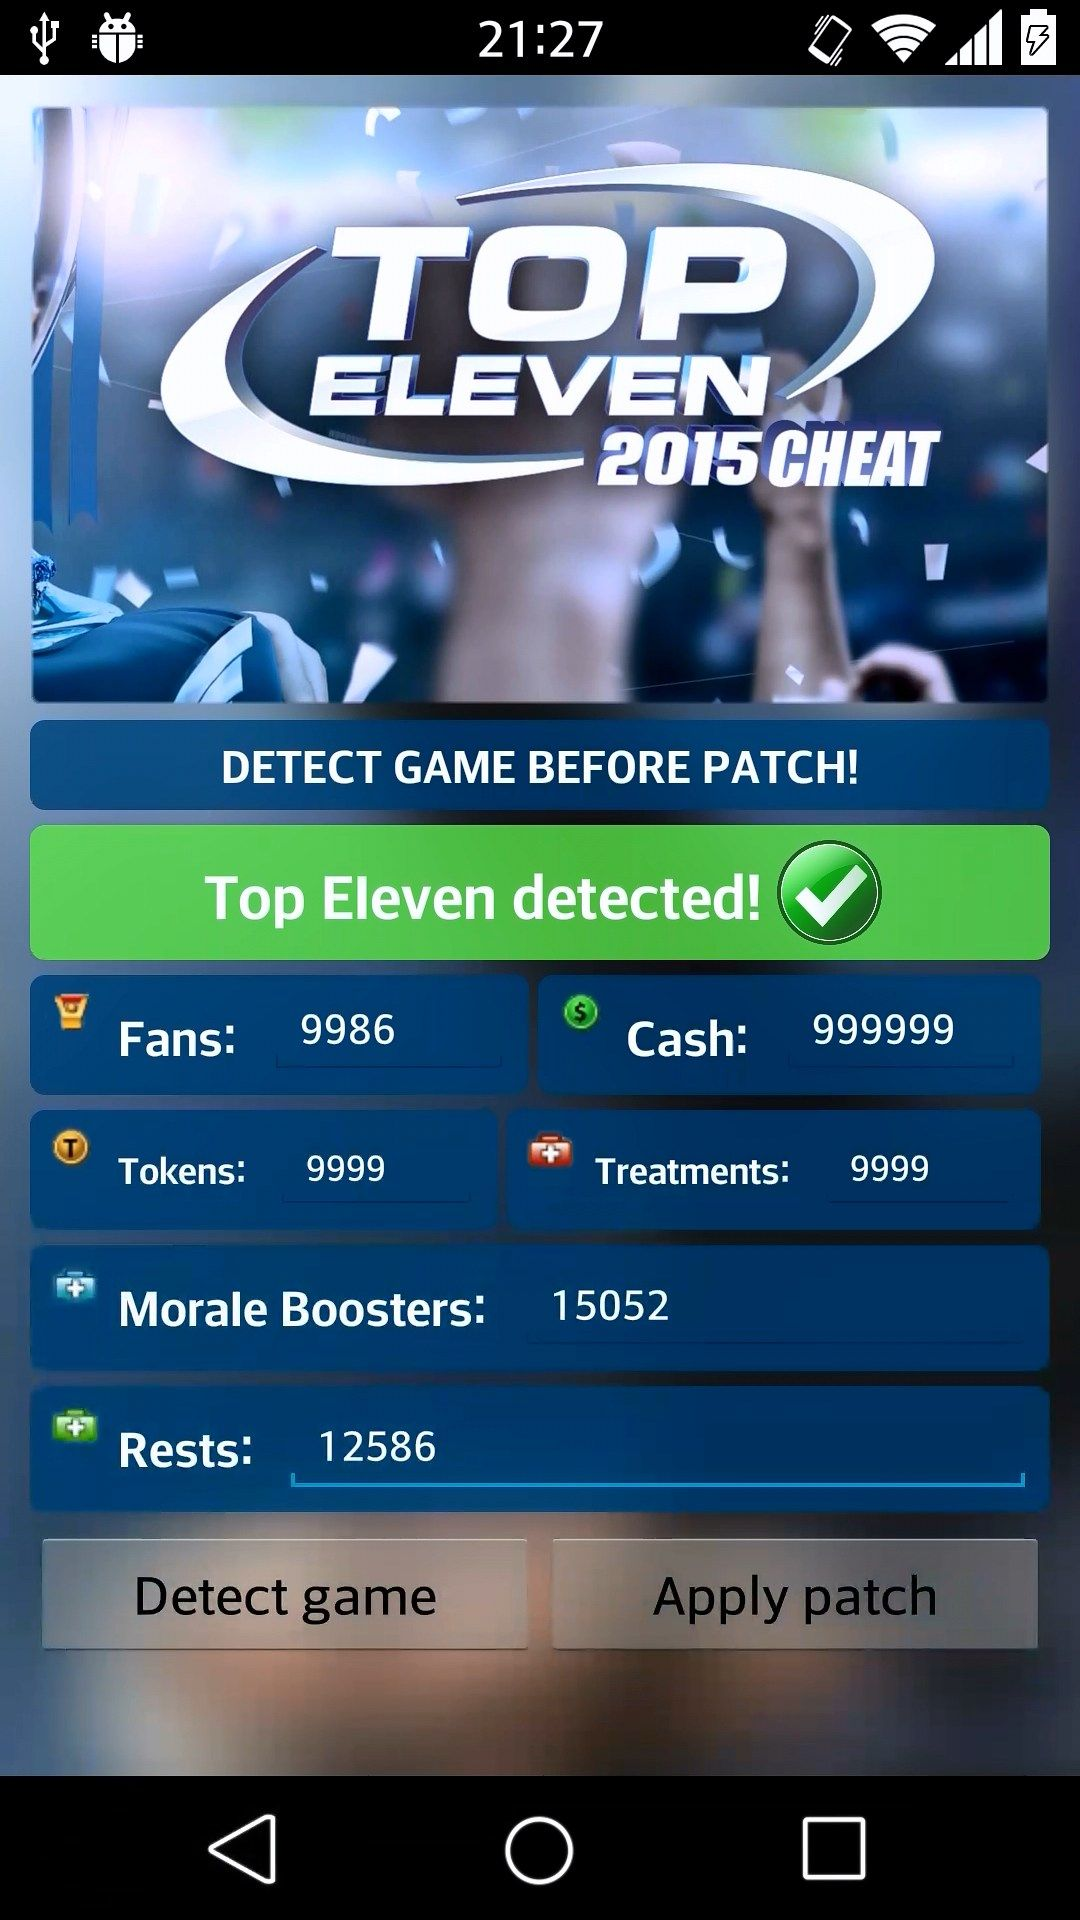 HOW TO GET FREE Tokens, Cash, Treatments, Morale Boosters